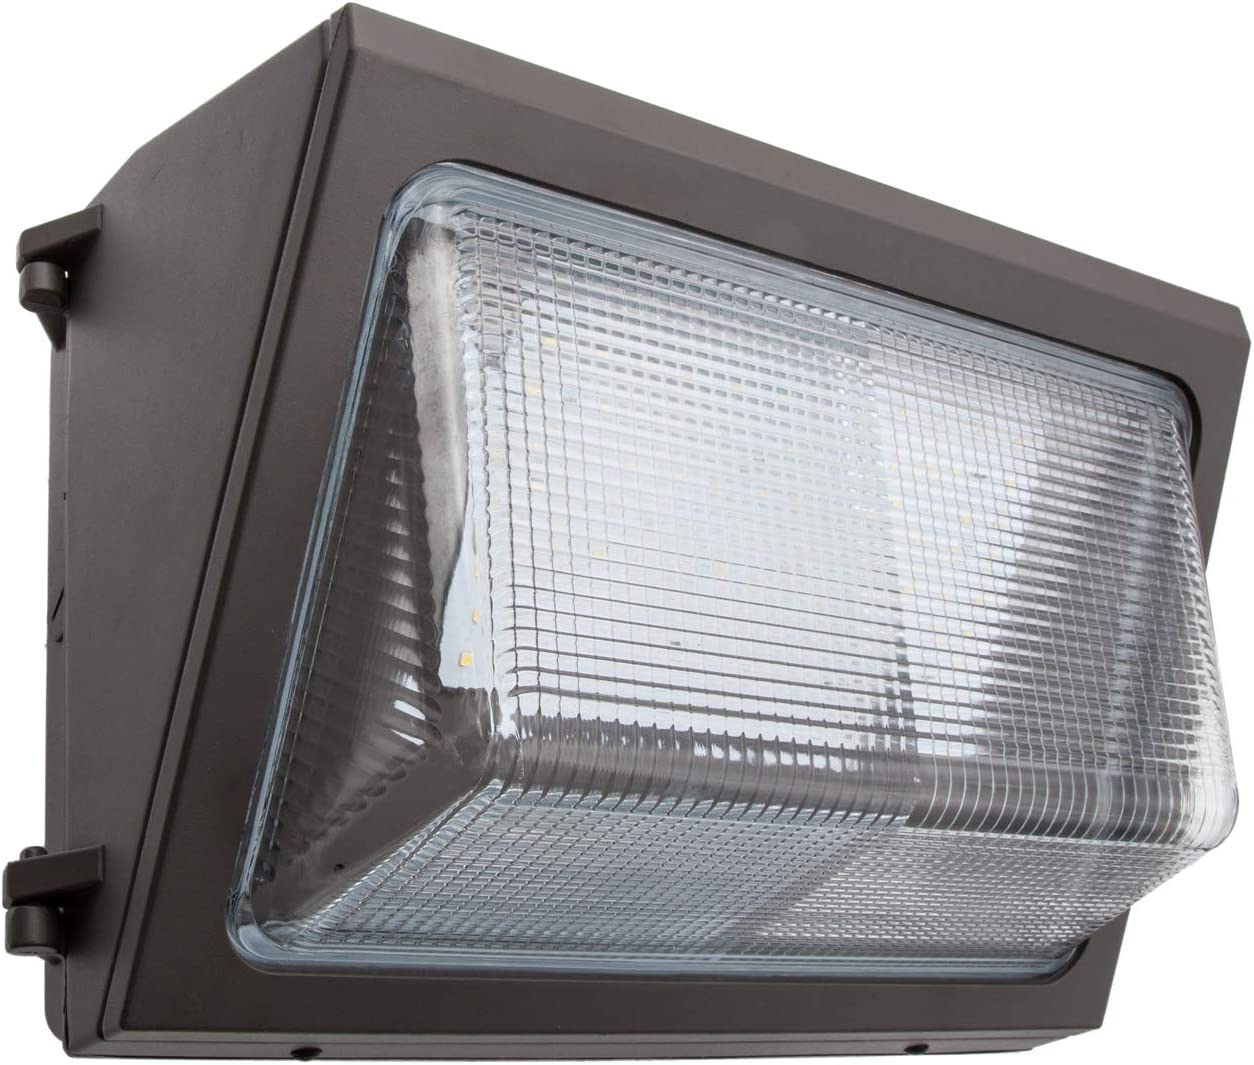 Maxxima LED Wall Pack Security Light 50 Watts 5000 500 Lumens Max 51% OFF New life